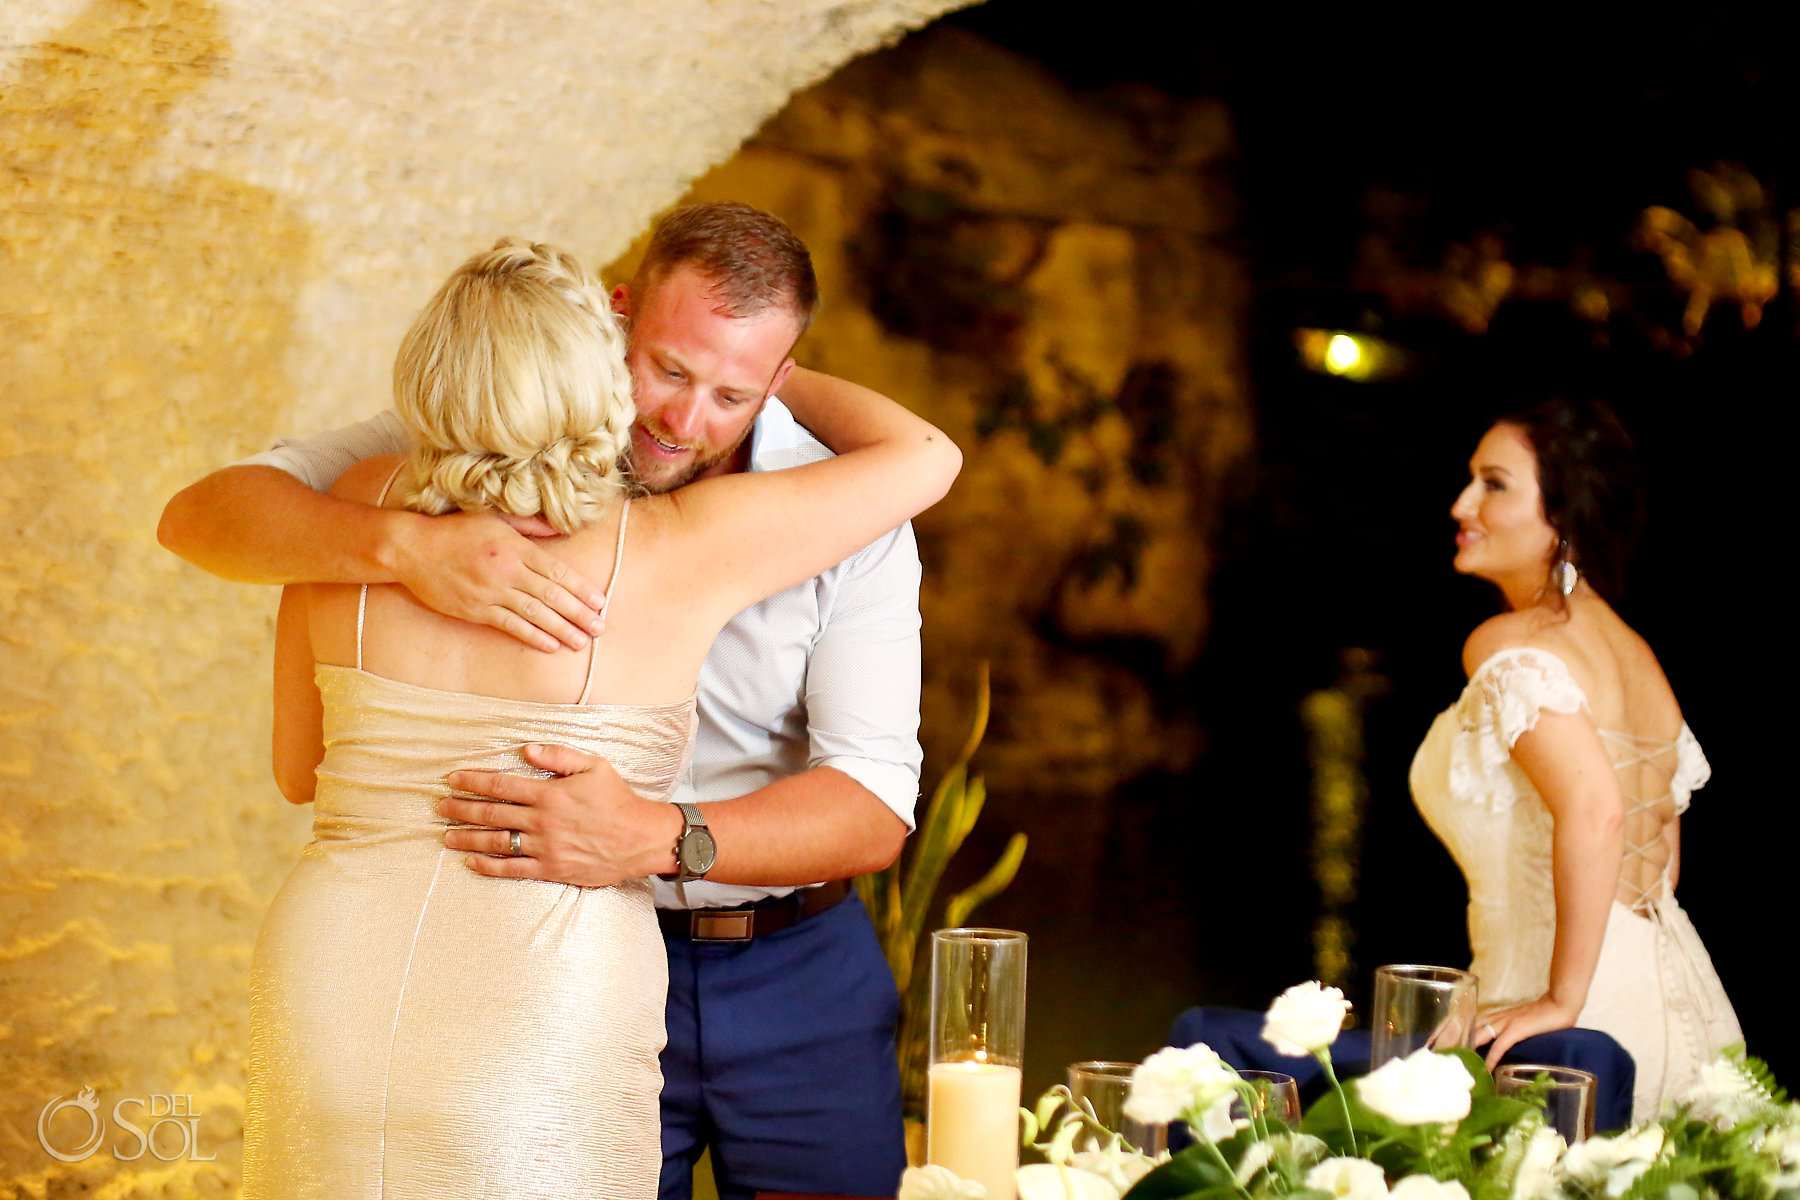 Hotel Xcaret Mexico Wedding reception location Cuevitas restaurant speeches